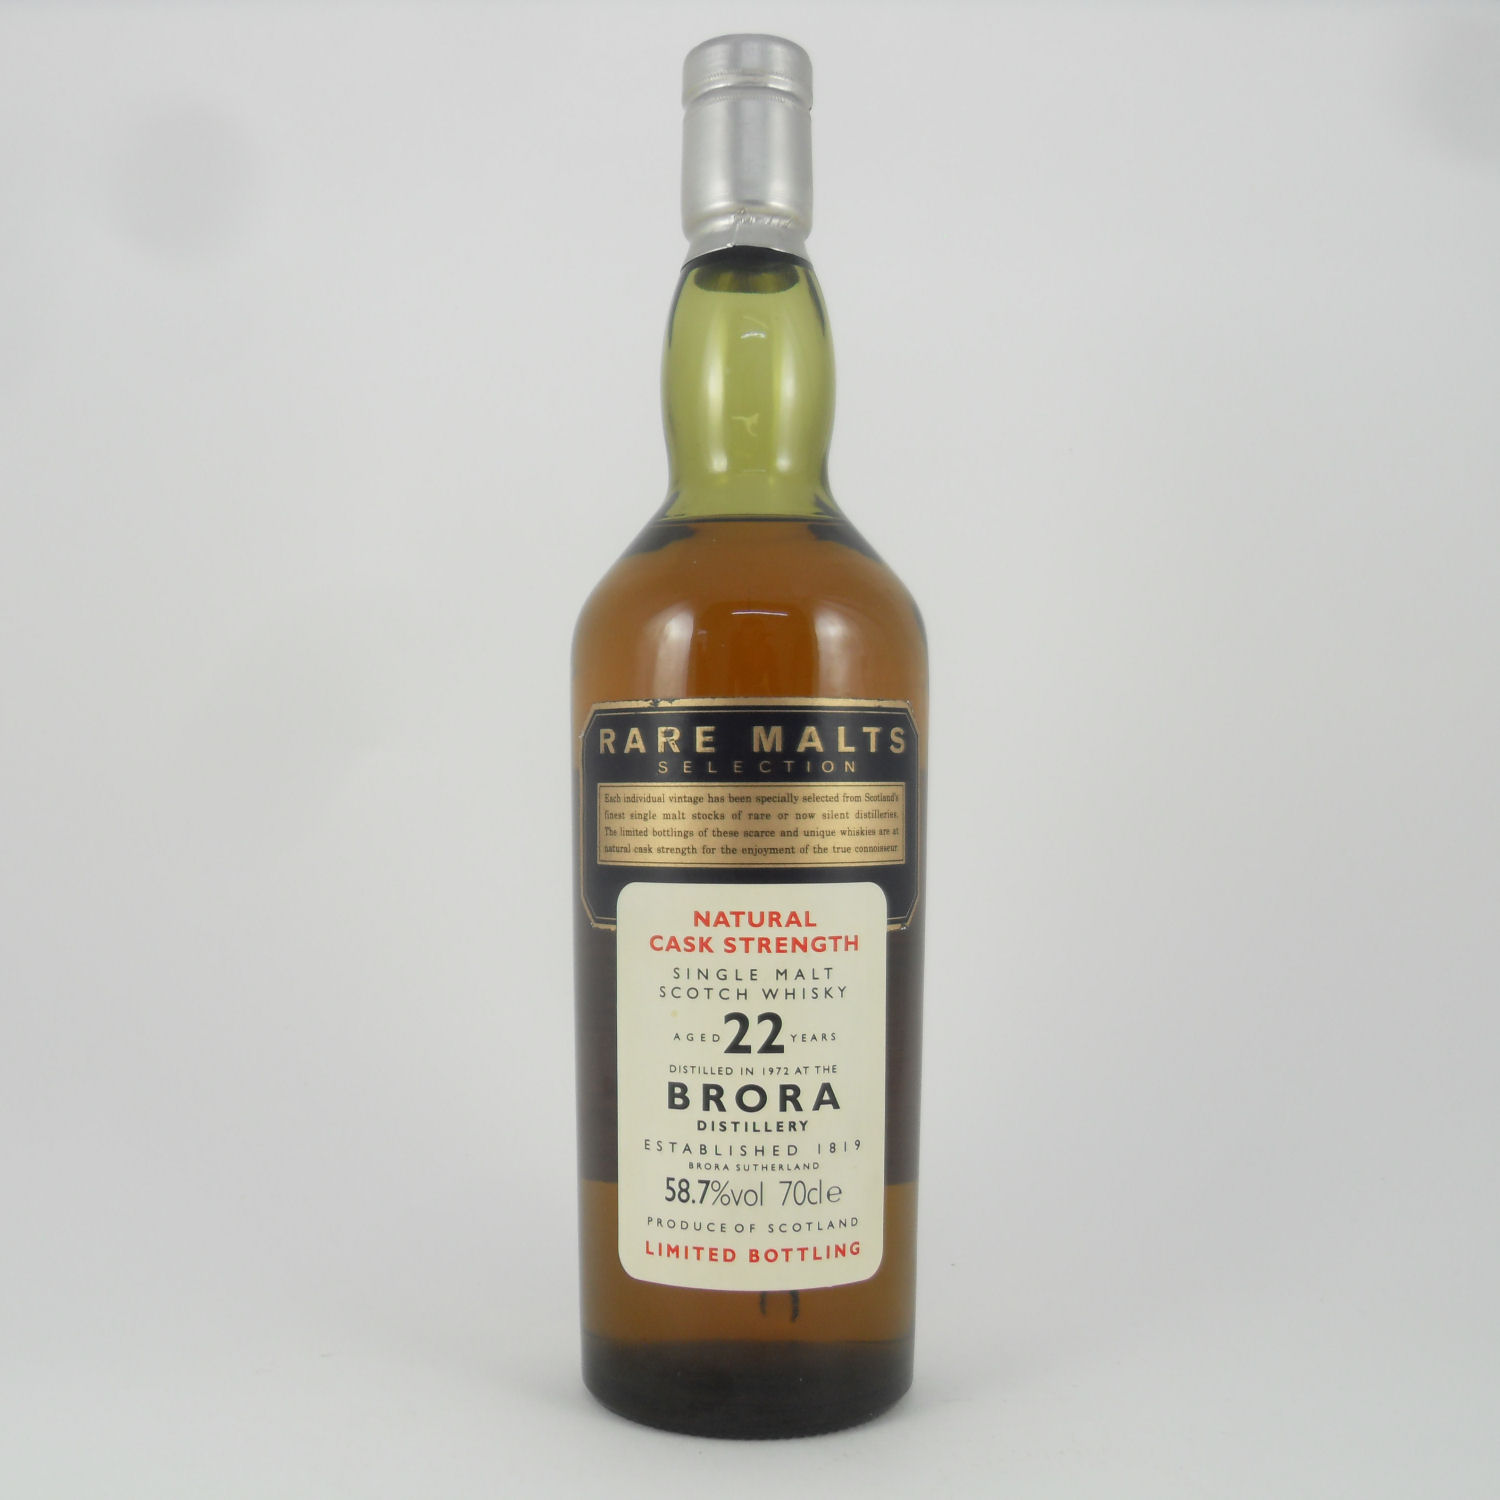 Brora Scotch Whisky